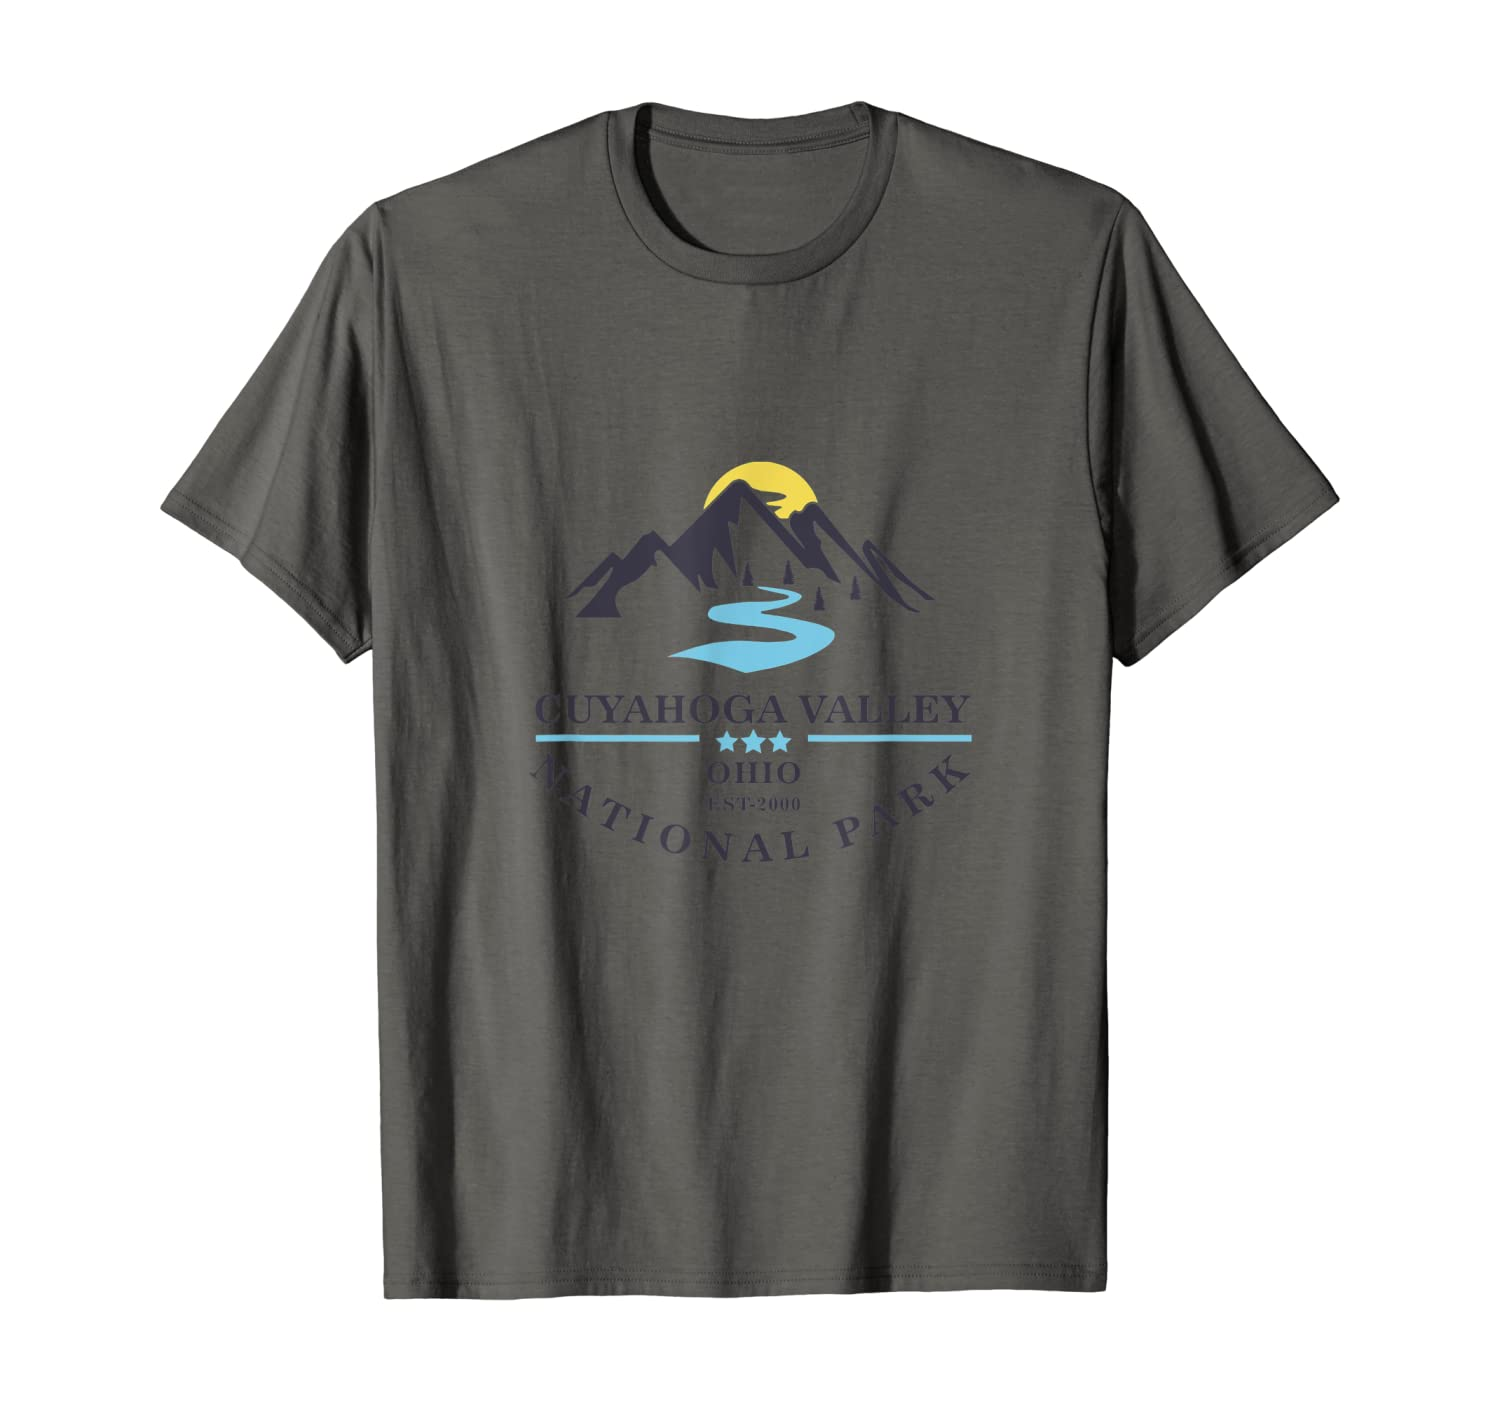 Sunset over Mountains Cuyahoga Valley National Park T-Shirt